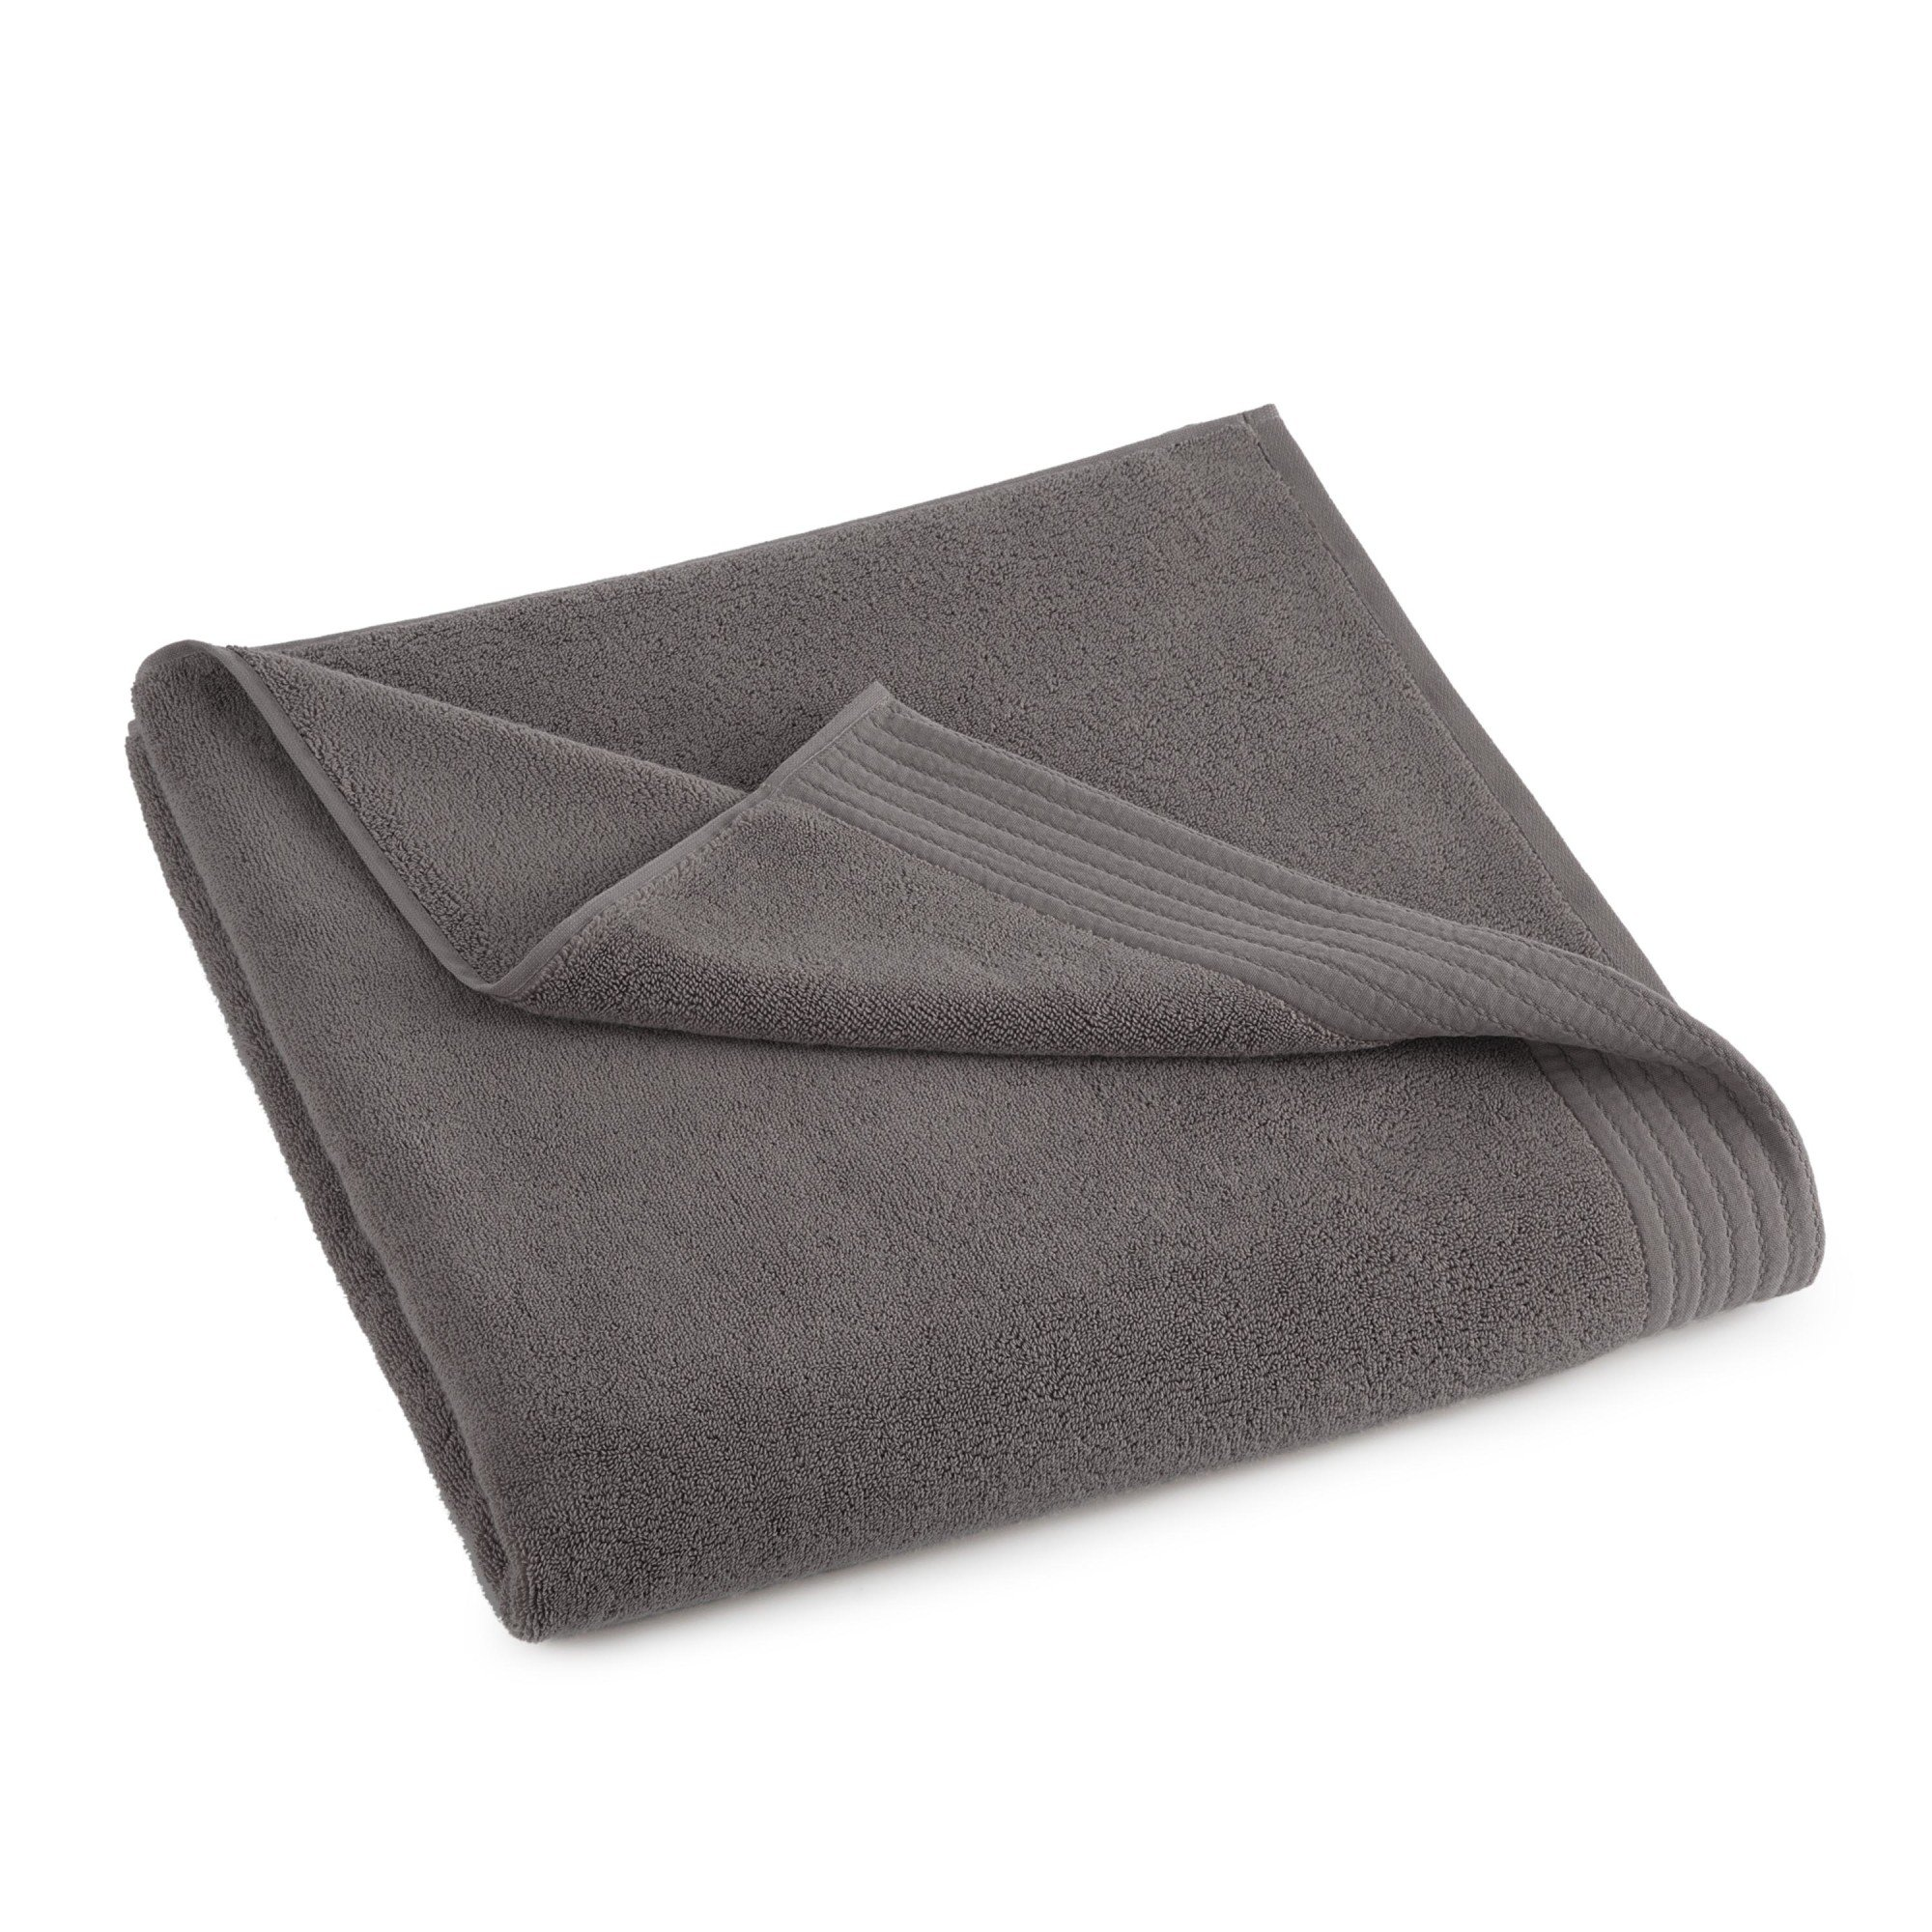 Grand Patrician Turkish Luxury Bath Sheet, Charcoal Grey